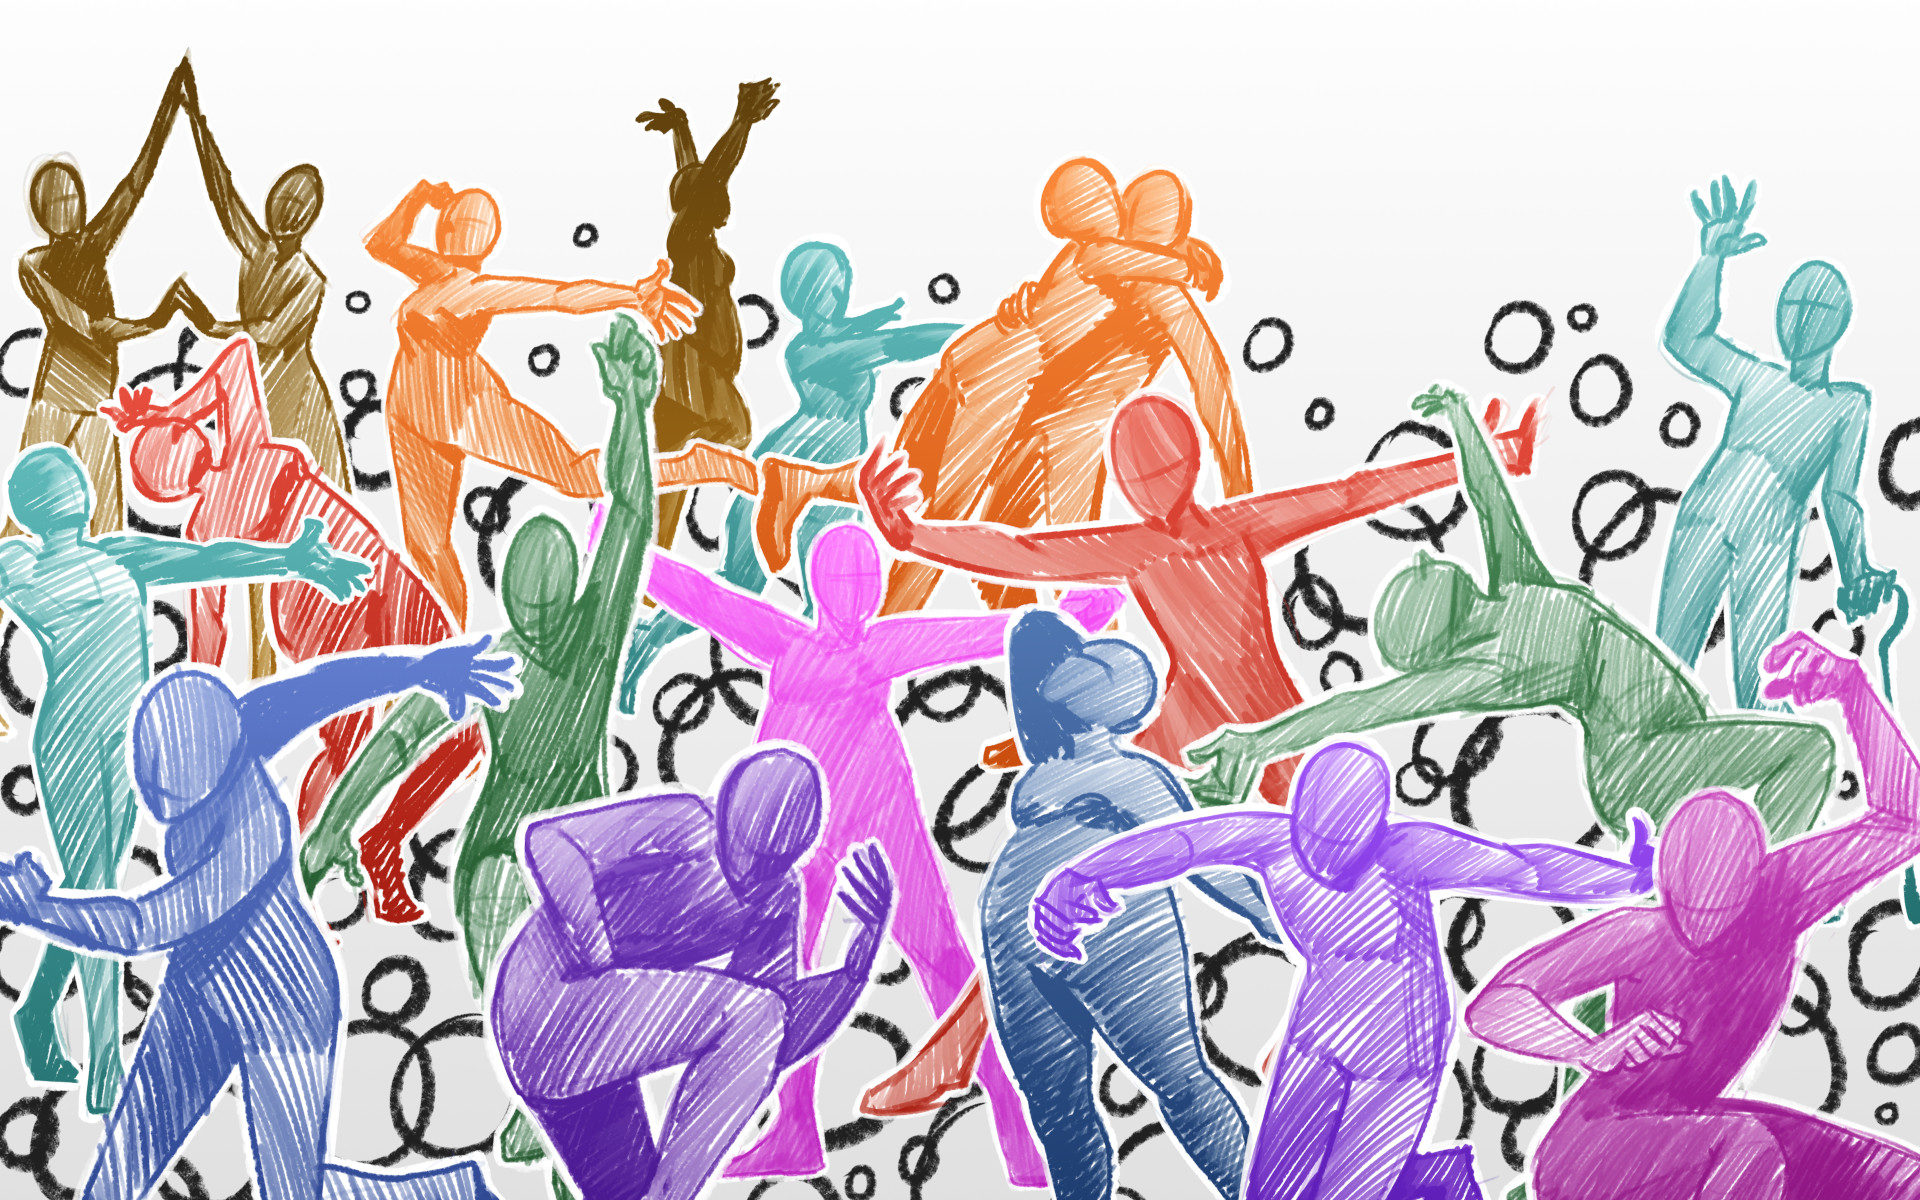 Illustration of a group of brightly colored abstract human figures in various dynamic poses